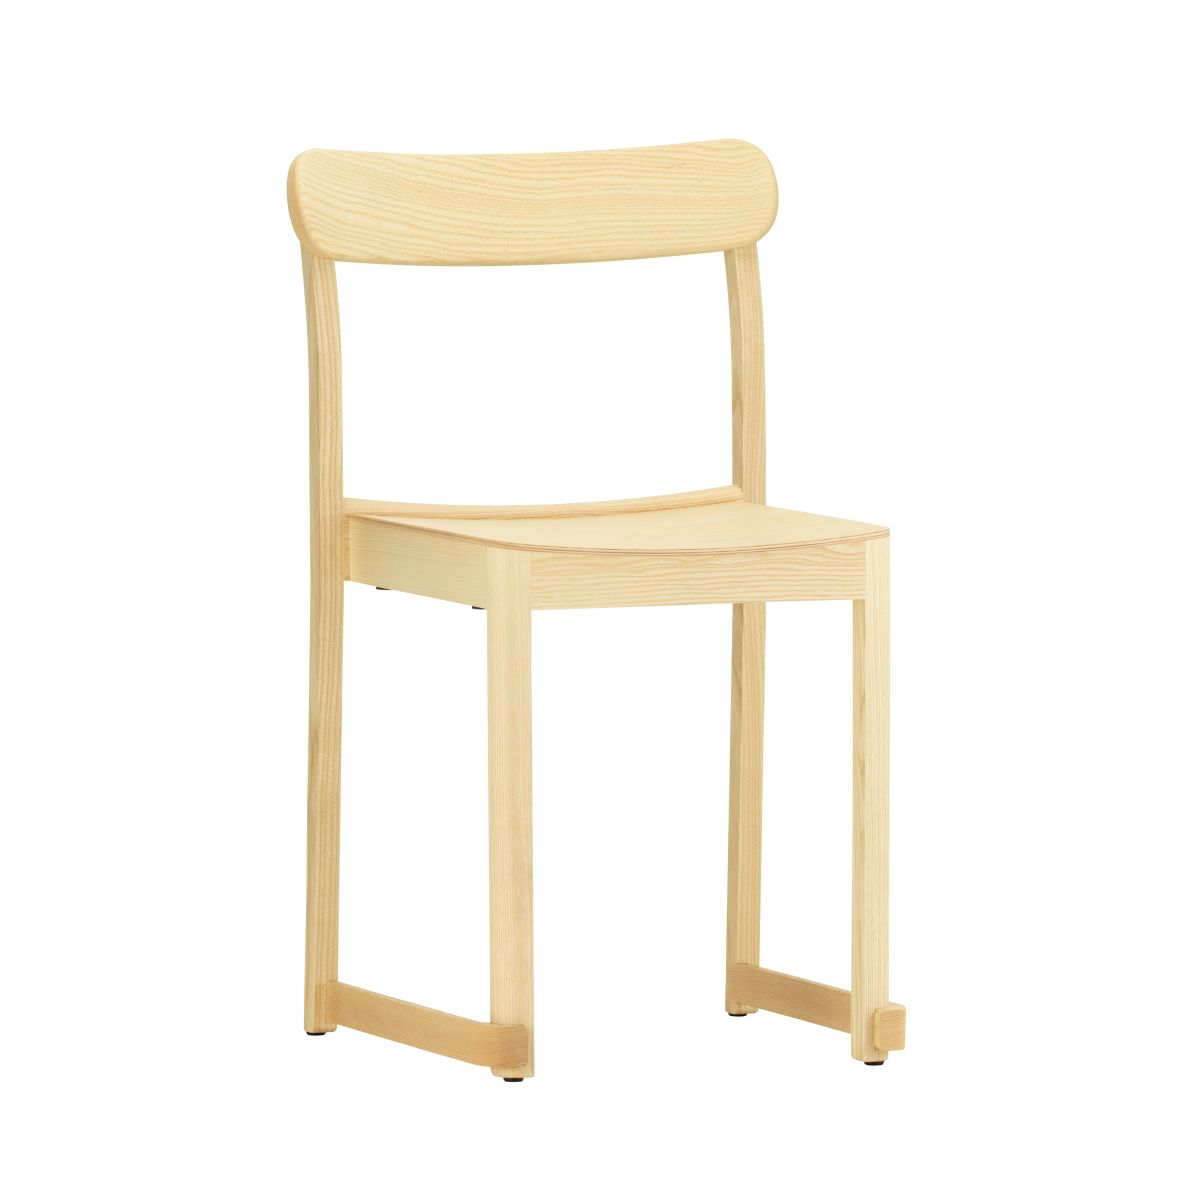 Atelier Chair Natural Lacquered Ash Web 2432685